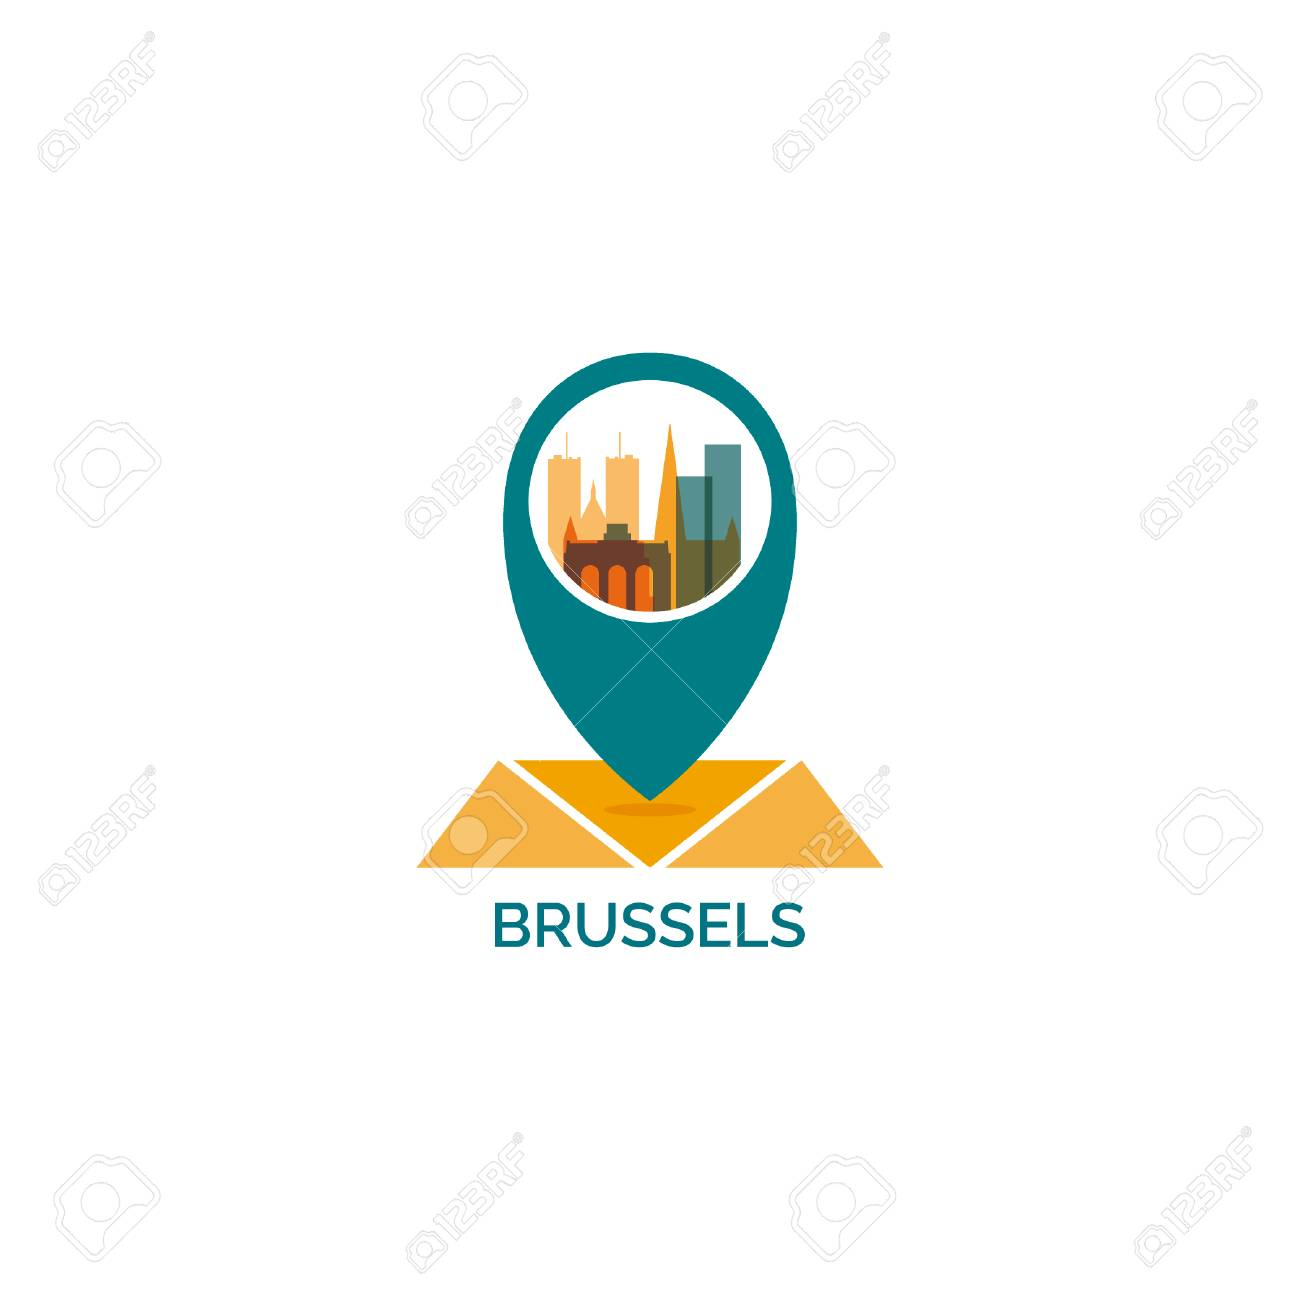 belgium brussels map pin point geolocation modern skyline shape vector icon illustration stock vector